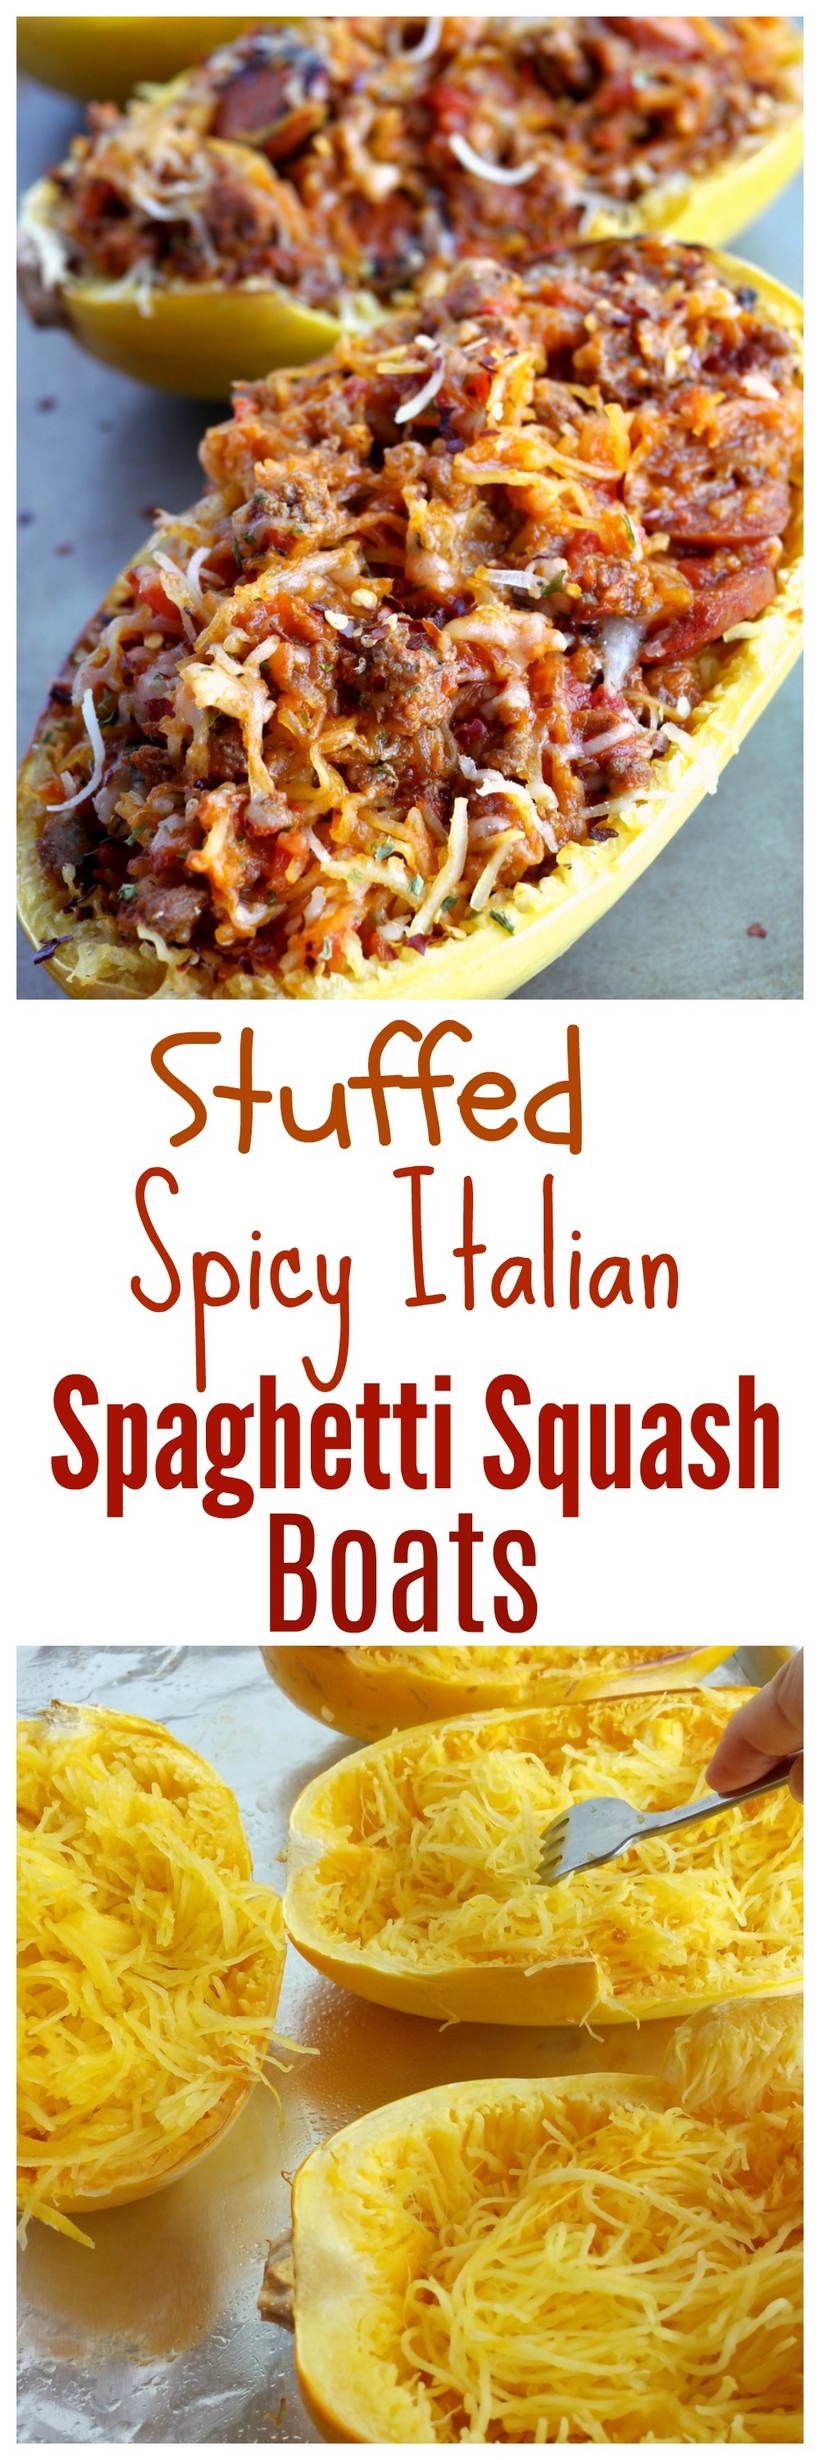 Stuffed Spicy Italian Spaghetti Squash Boats ~ All the flavors of a hearty spaghetti dinner packed into a tender, roasted spaghetti squash. This Stuffed Spicy Italian Spaghetti Squash Boats recipe are the answer to comfort food made in a healthy way.  A fork is all it takes to separate the pale orange strands of the gourd into vegetable noodles. It couldn't be easier from NoblePig.com. #noblepig #spaghettisquash #italianfood #healthyeats